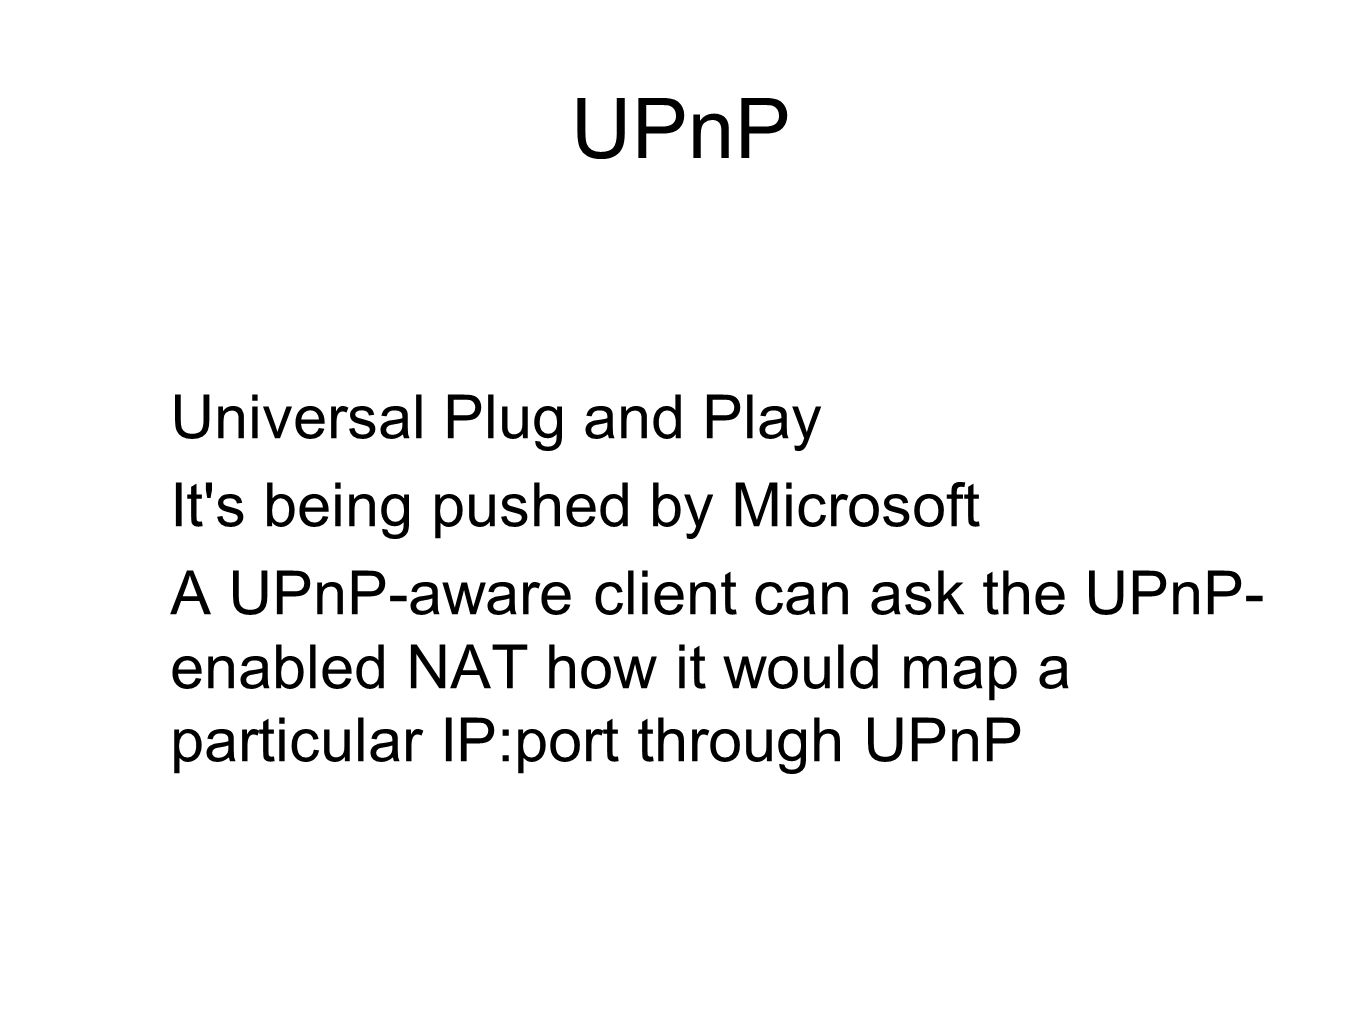 UPnP Universal Plug and Play It s being pushed by Microsoft